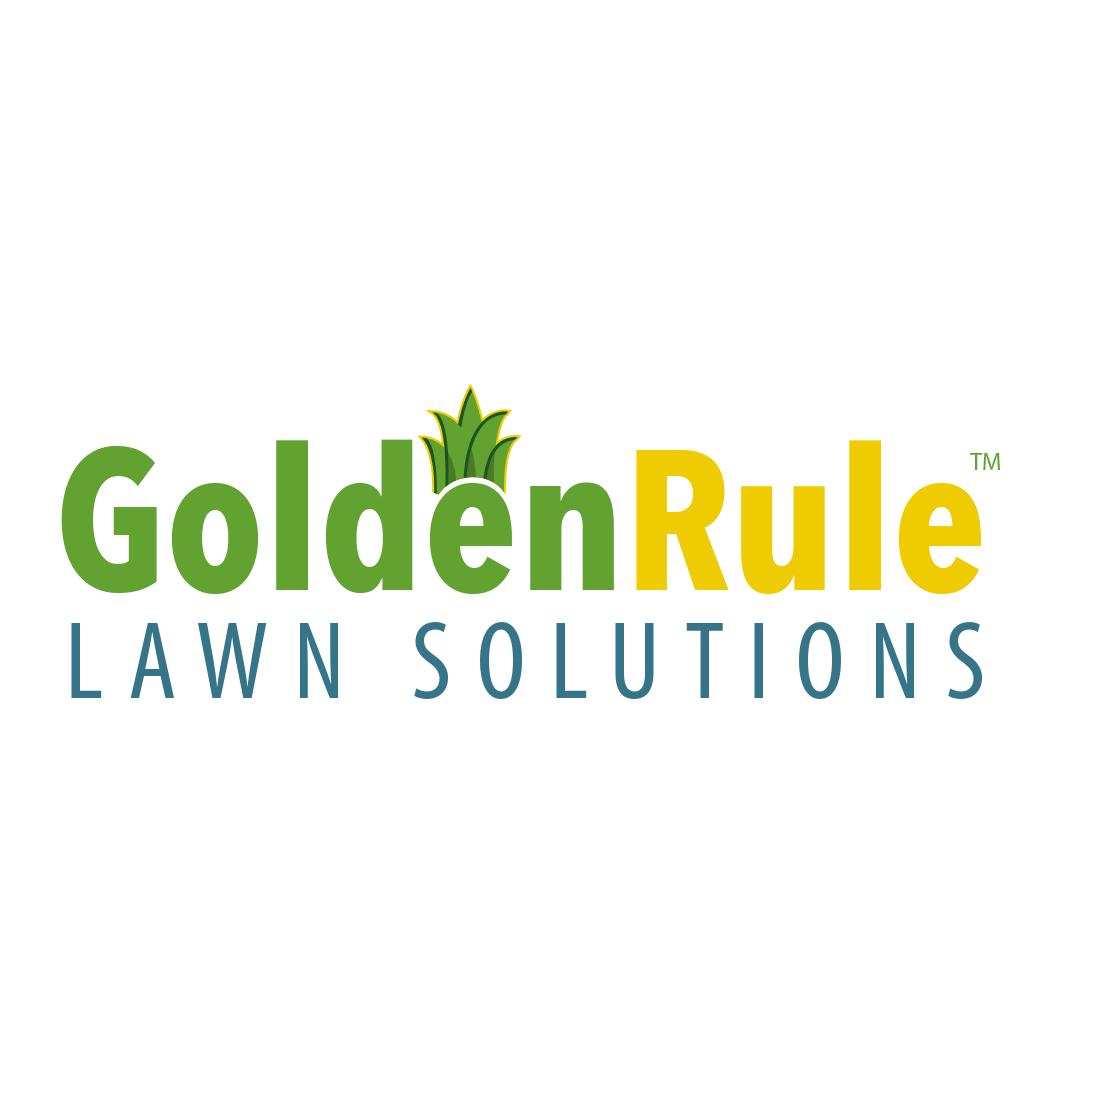 GoldenRule Lawn Solutions